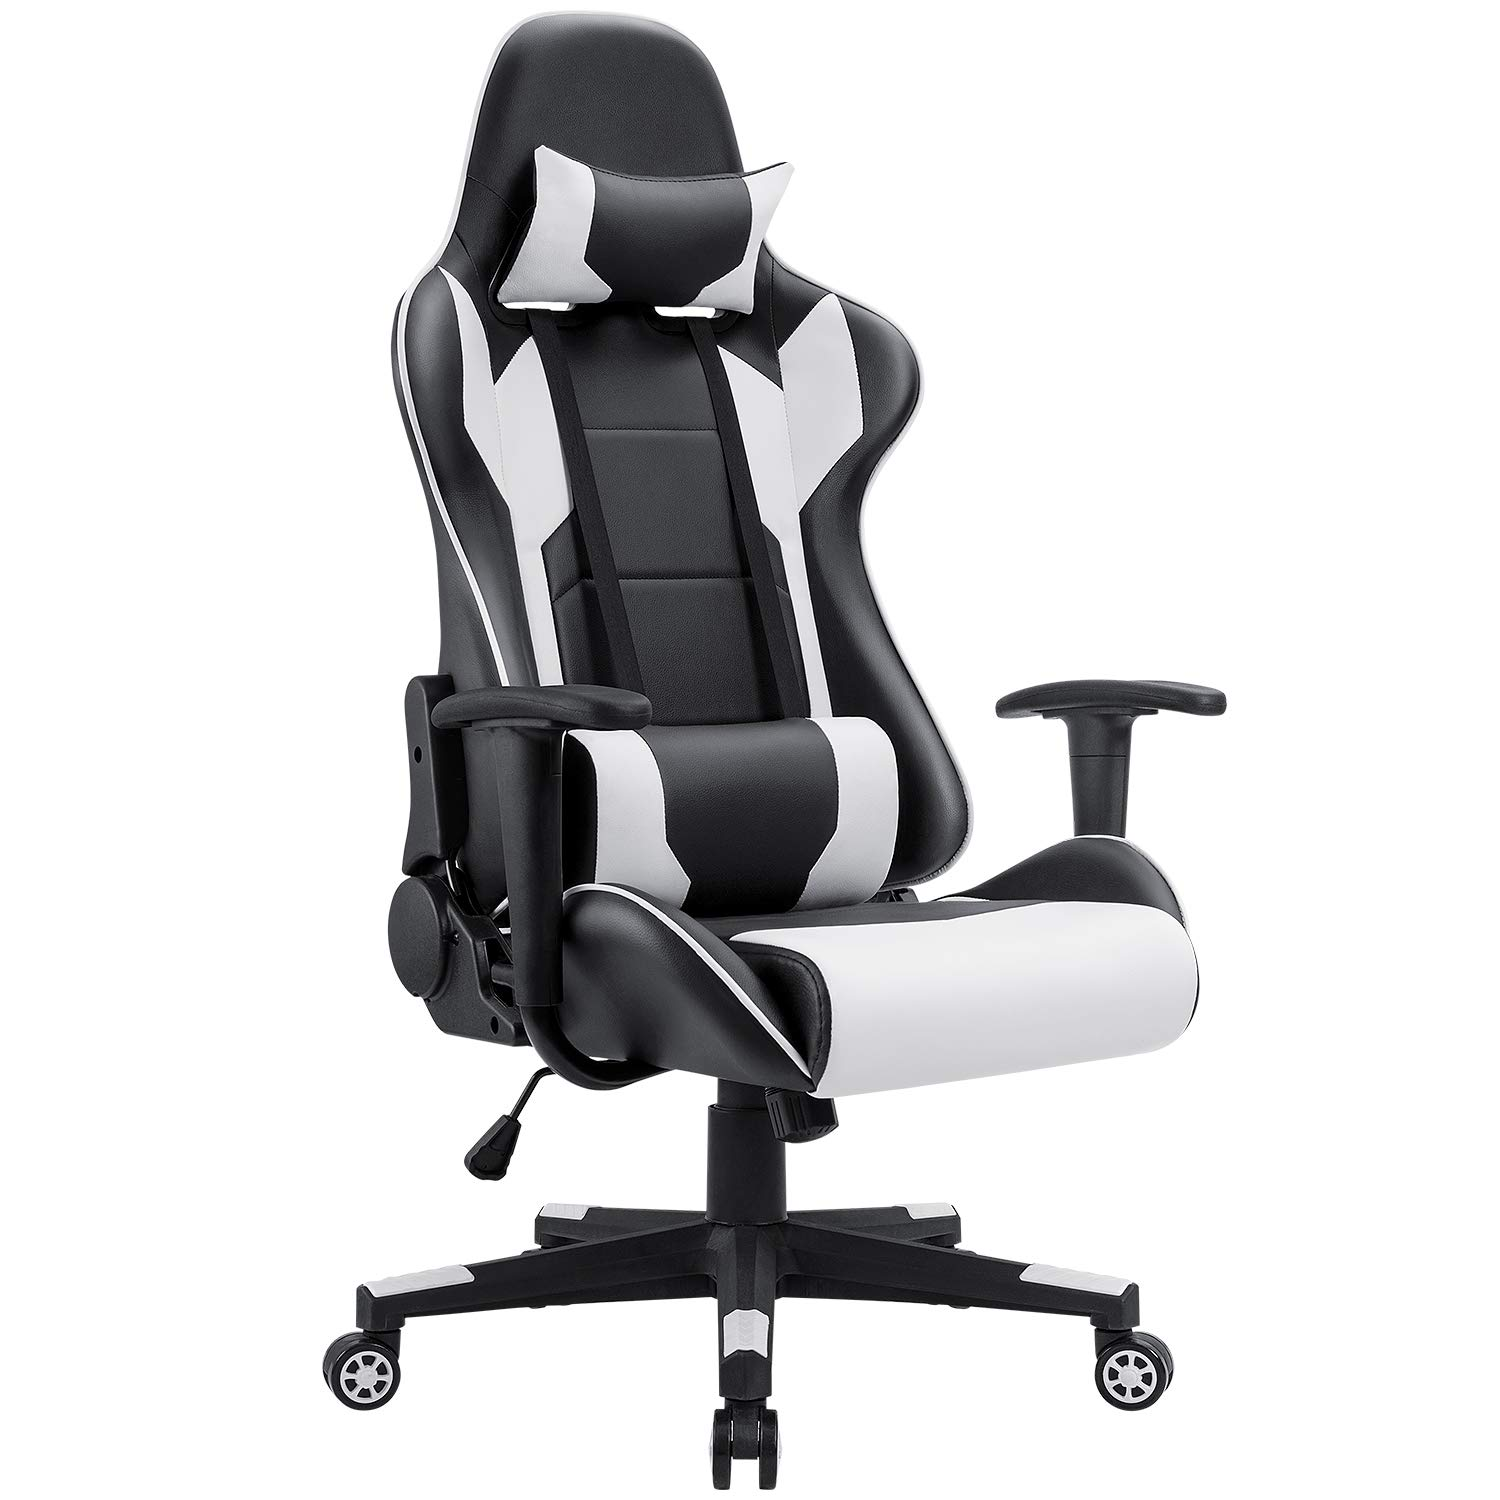 Homall Gaming Chair Racing Style High-Back PU Leather Office Chair Computer Desk Chair Executive and Ergonomic Style Swivel Chair with Headrest and Lumbar Support (White) by Homall